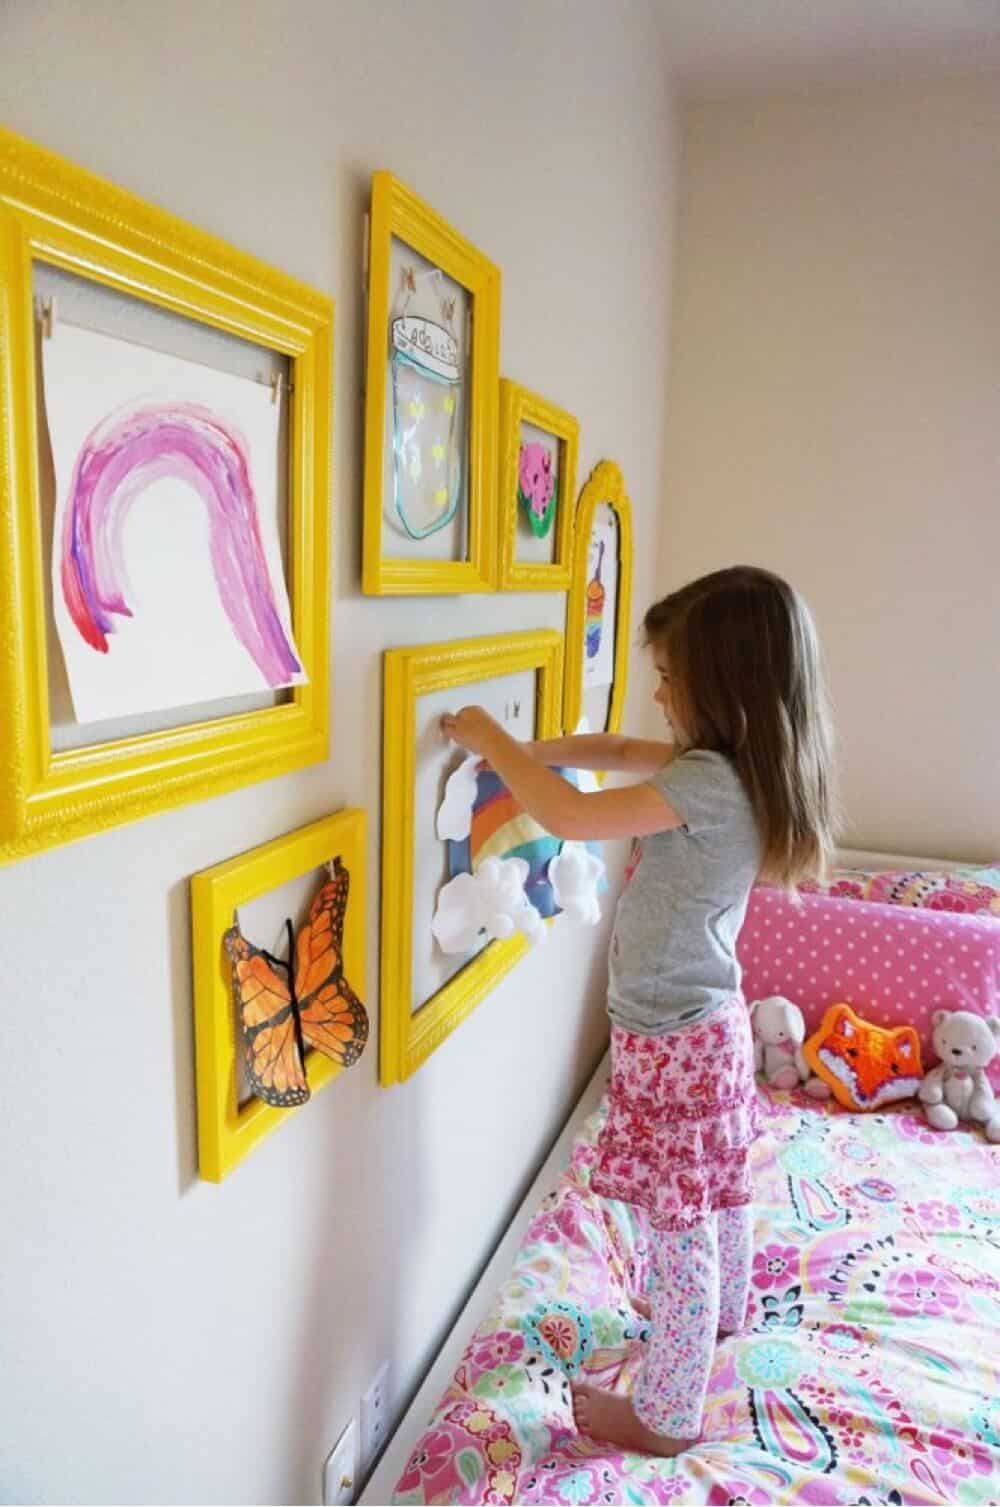 Do It Yourself Home Design: 17 Inspiring DIY Empty Frame Projects That Are Easy To